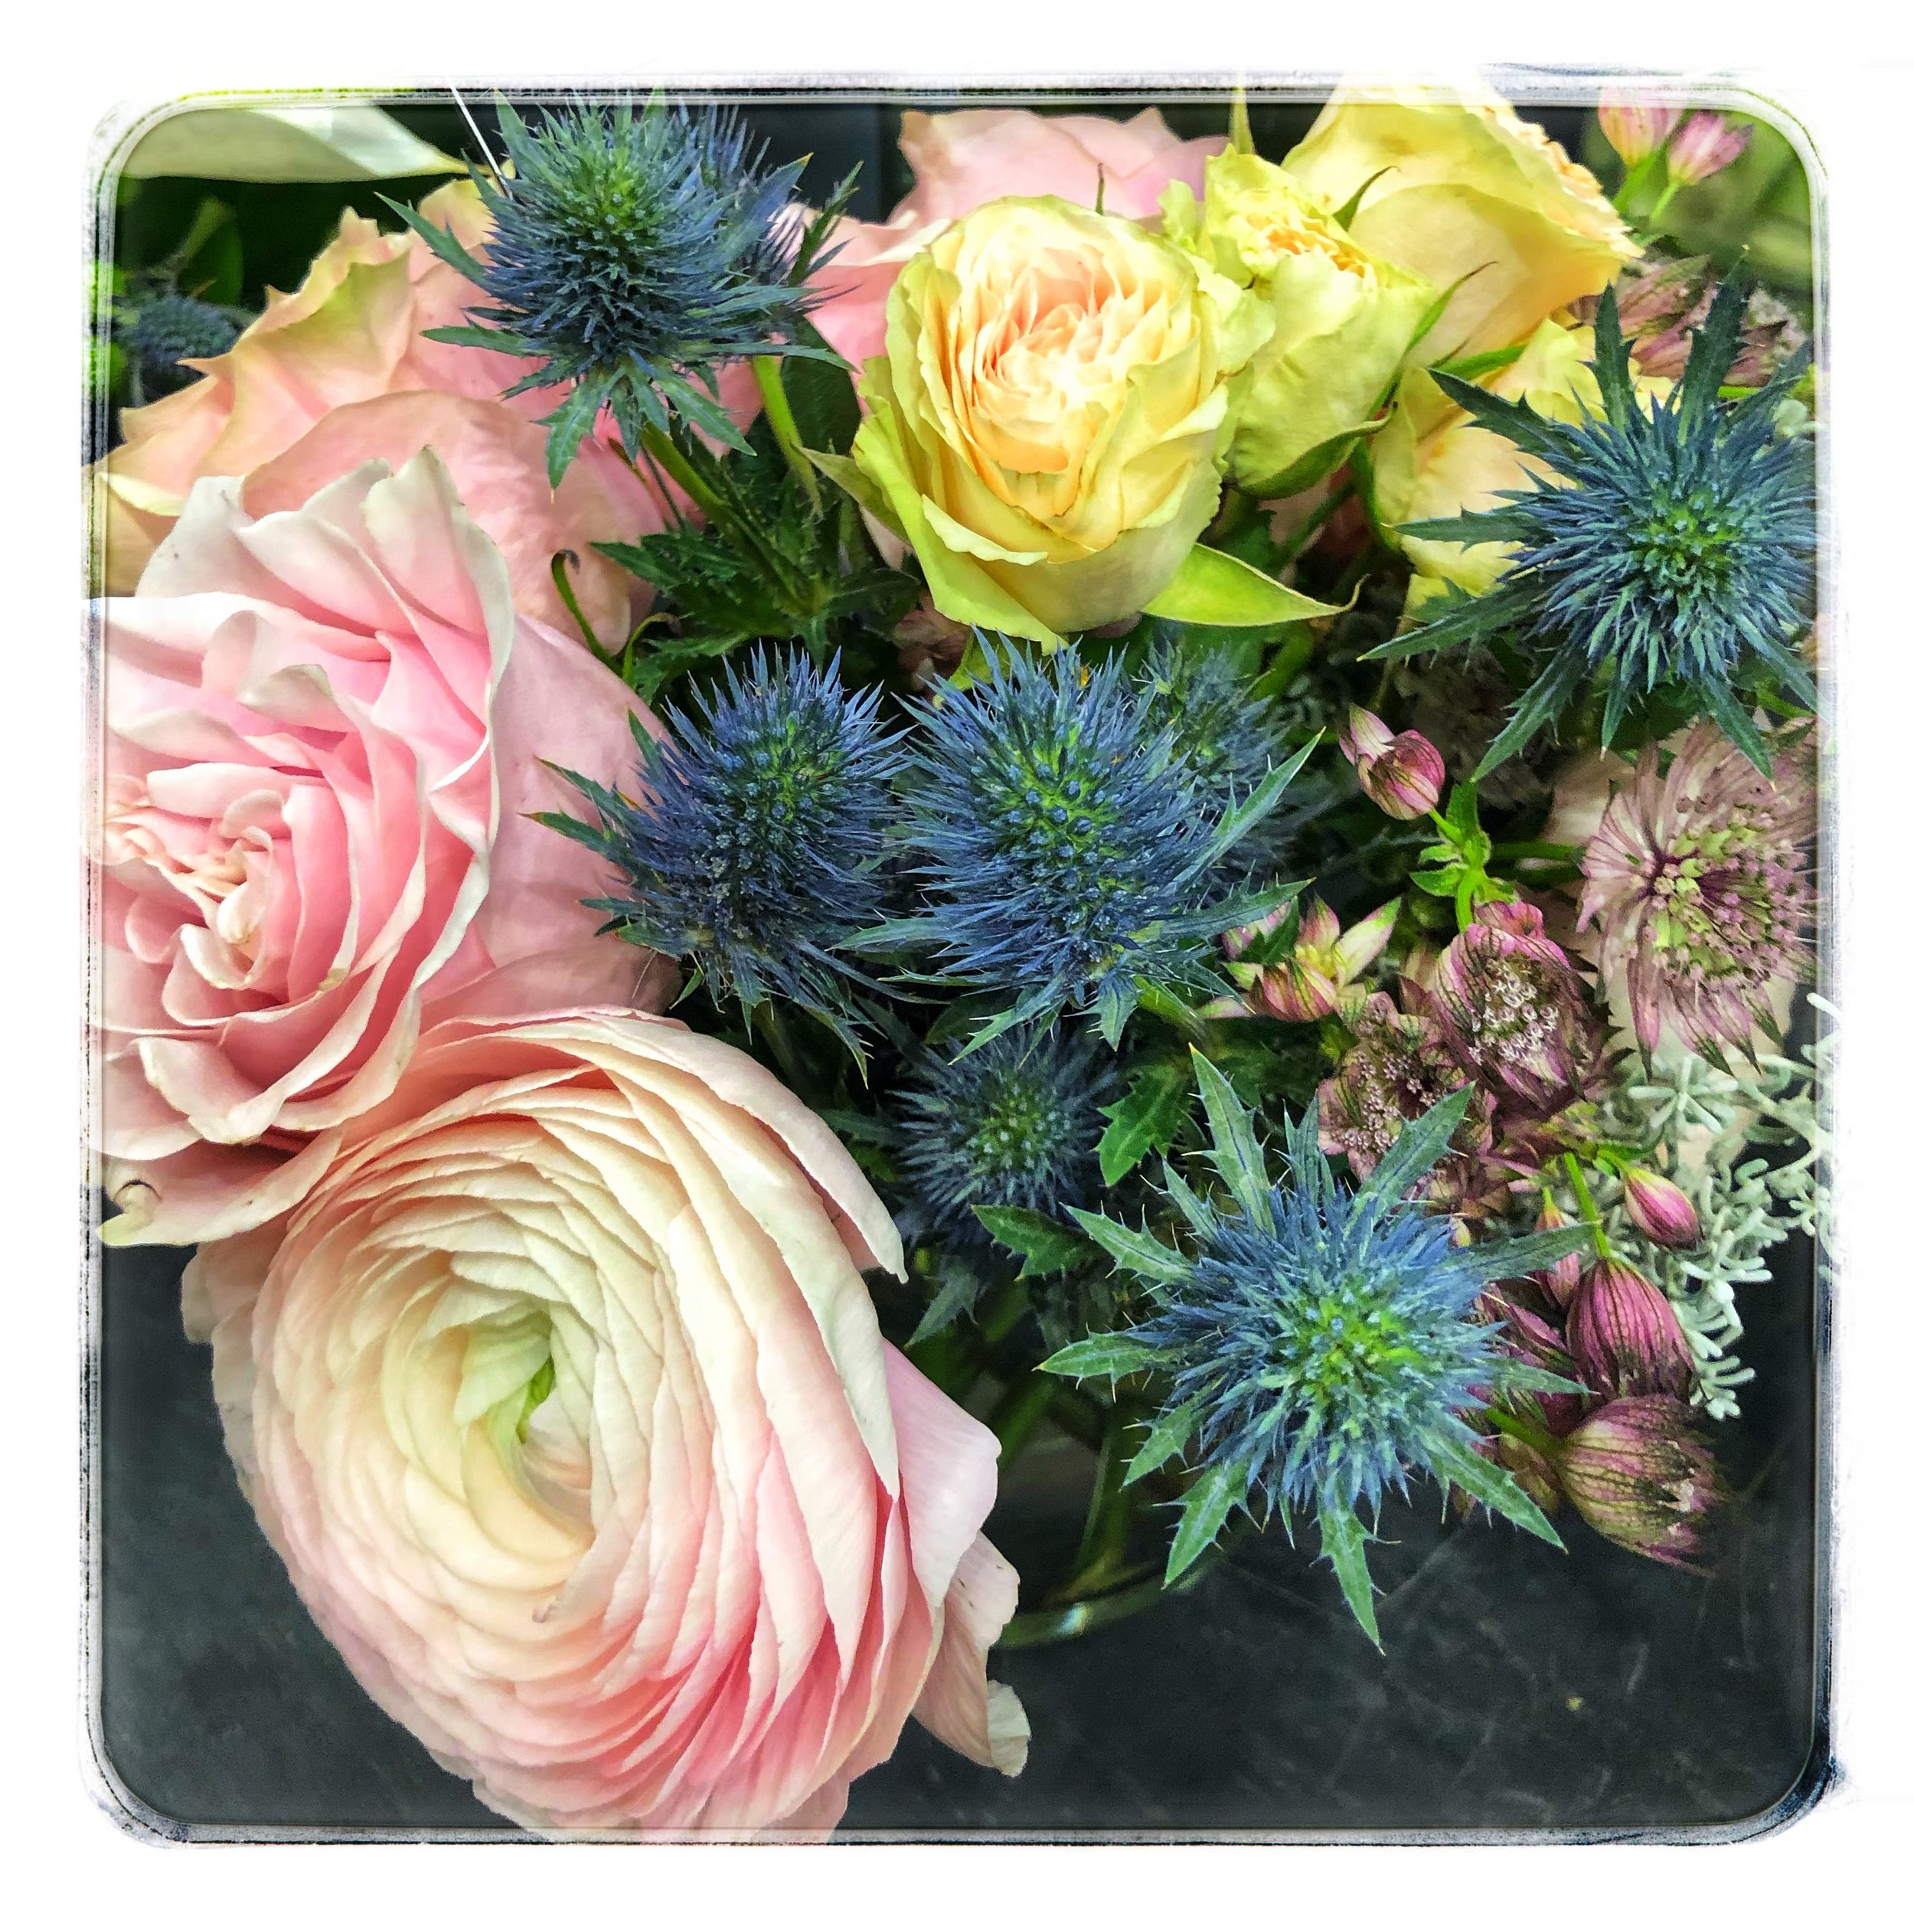 Rose and Eryngium floral arrangements available in our store.